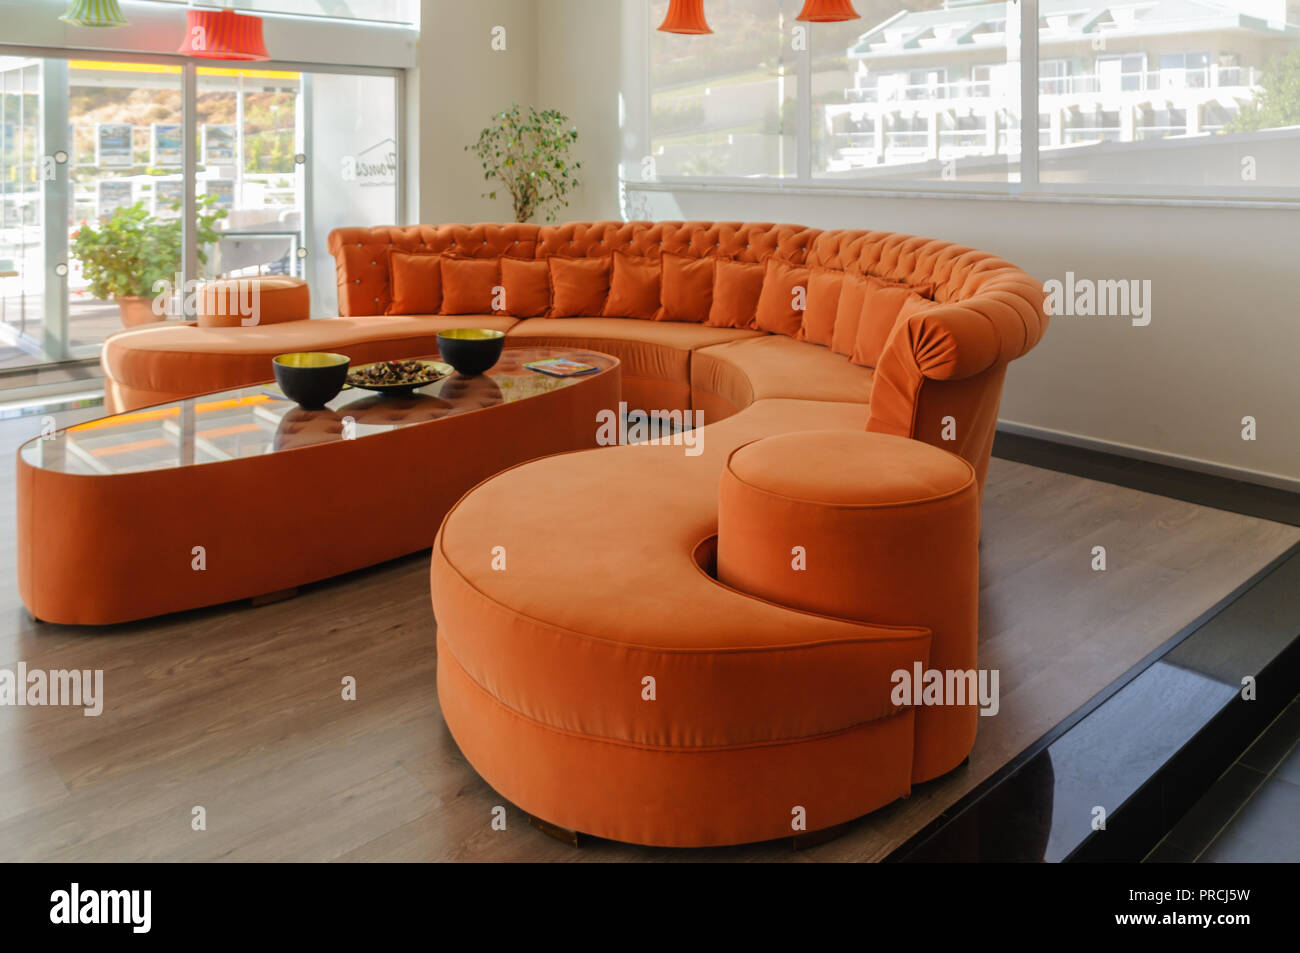 Curved Sofa Stock Photos & Curved Sofa Stock Images - Alamy